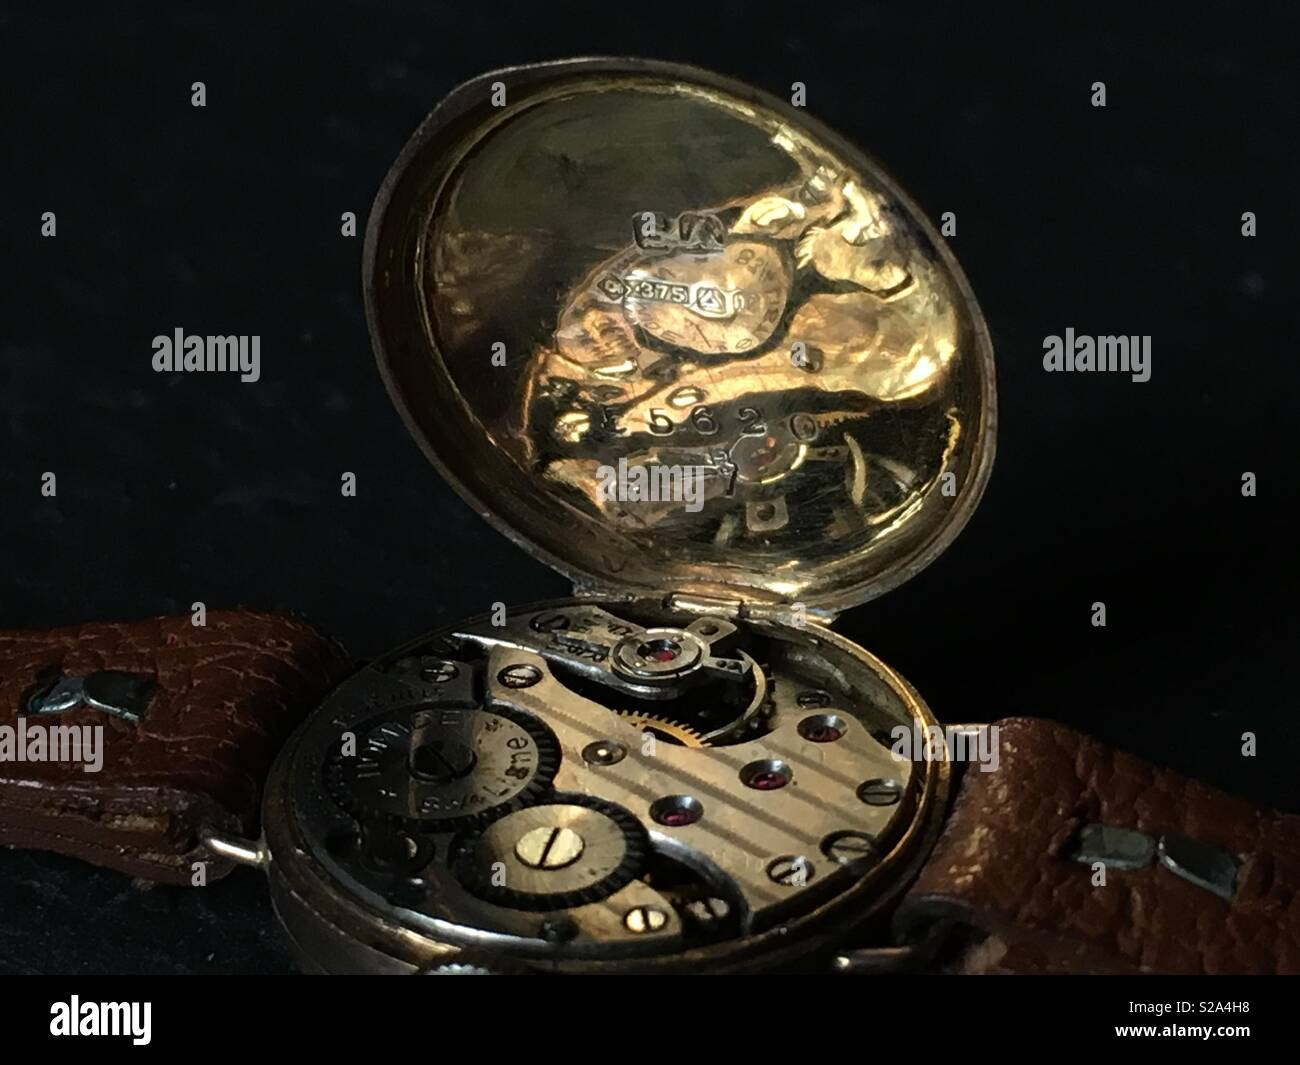 Vintage Mechanical watch movement in 9ct Yellow Gold Case close up - Stock Image